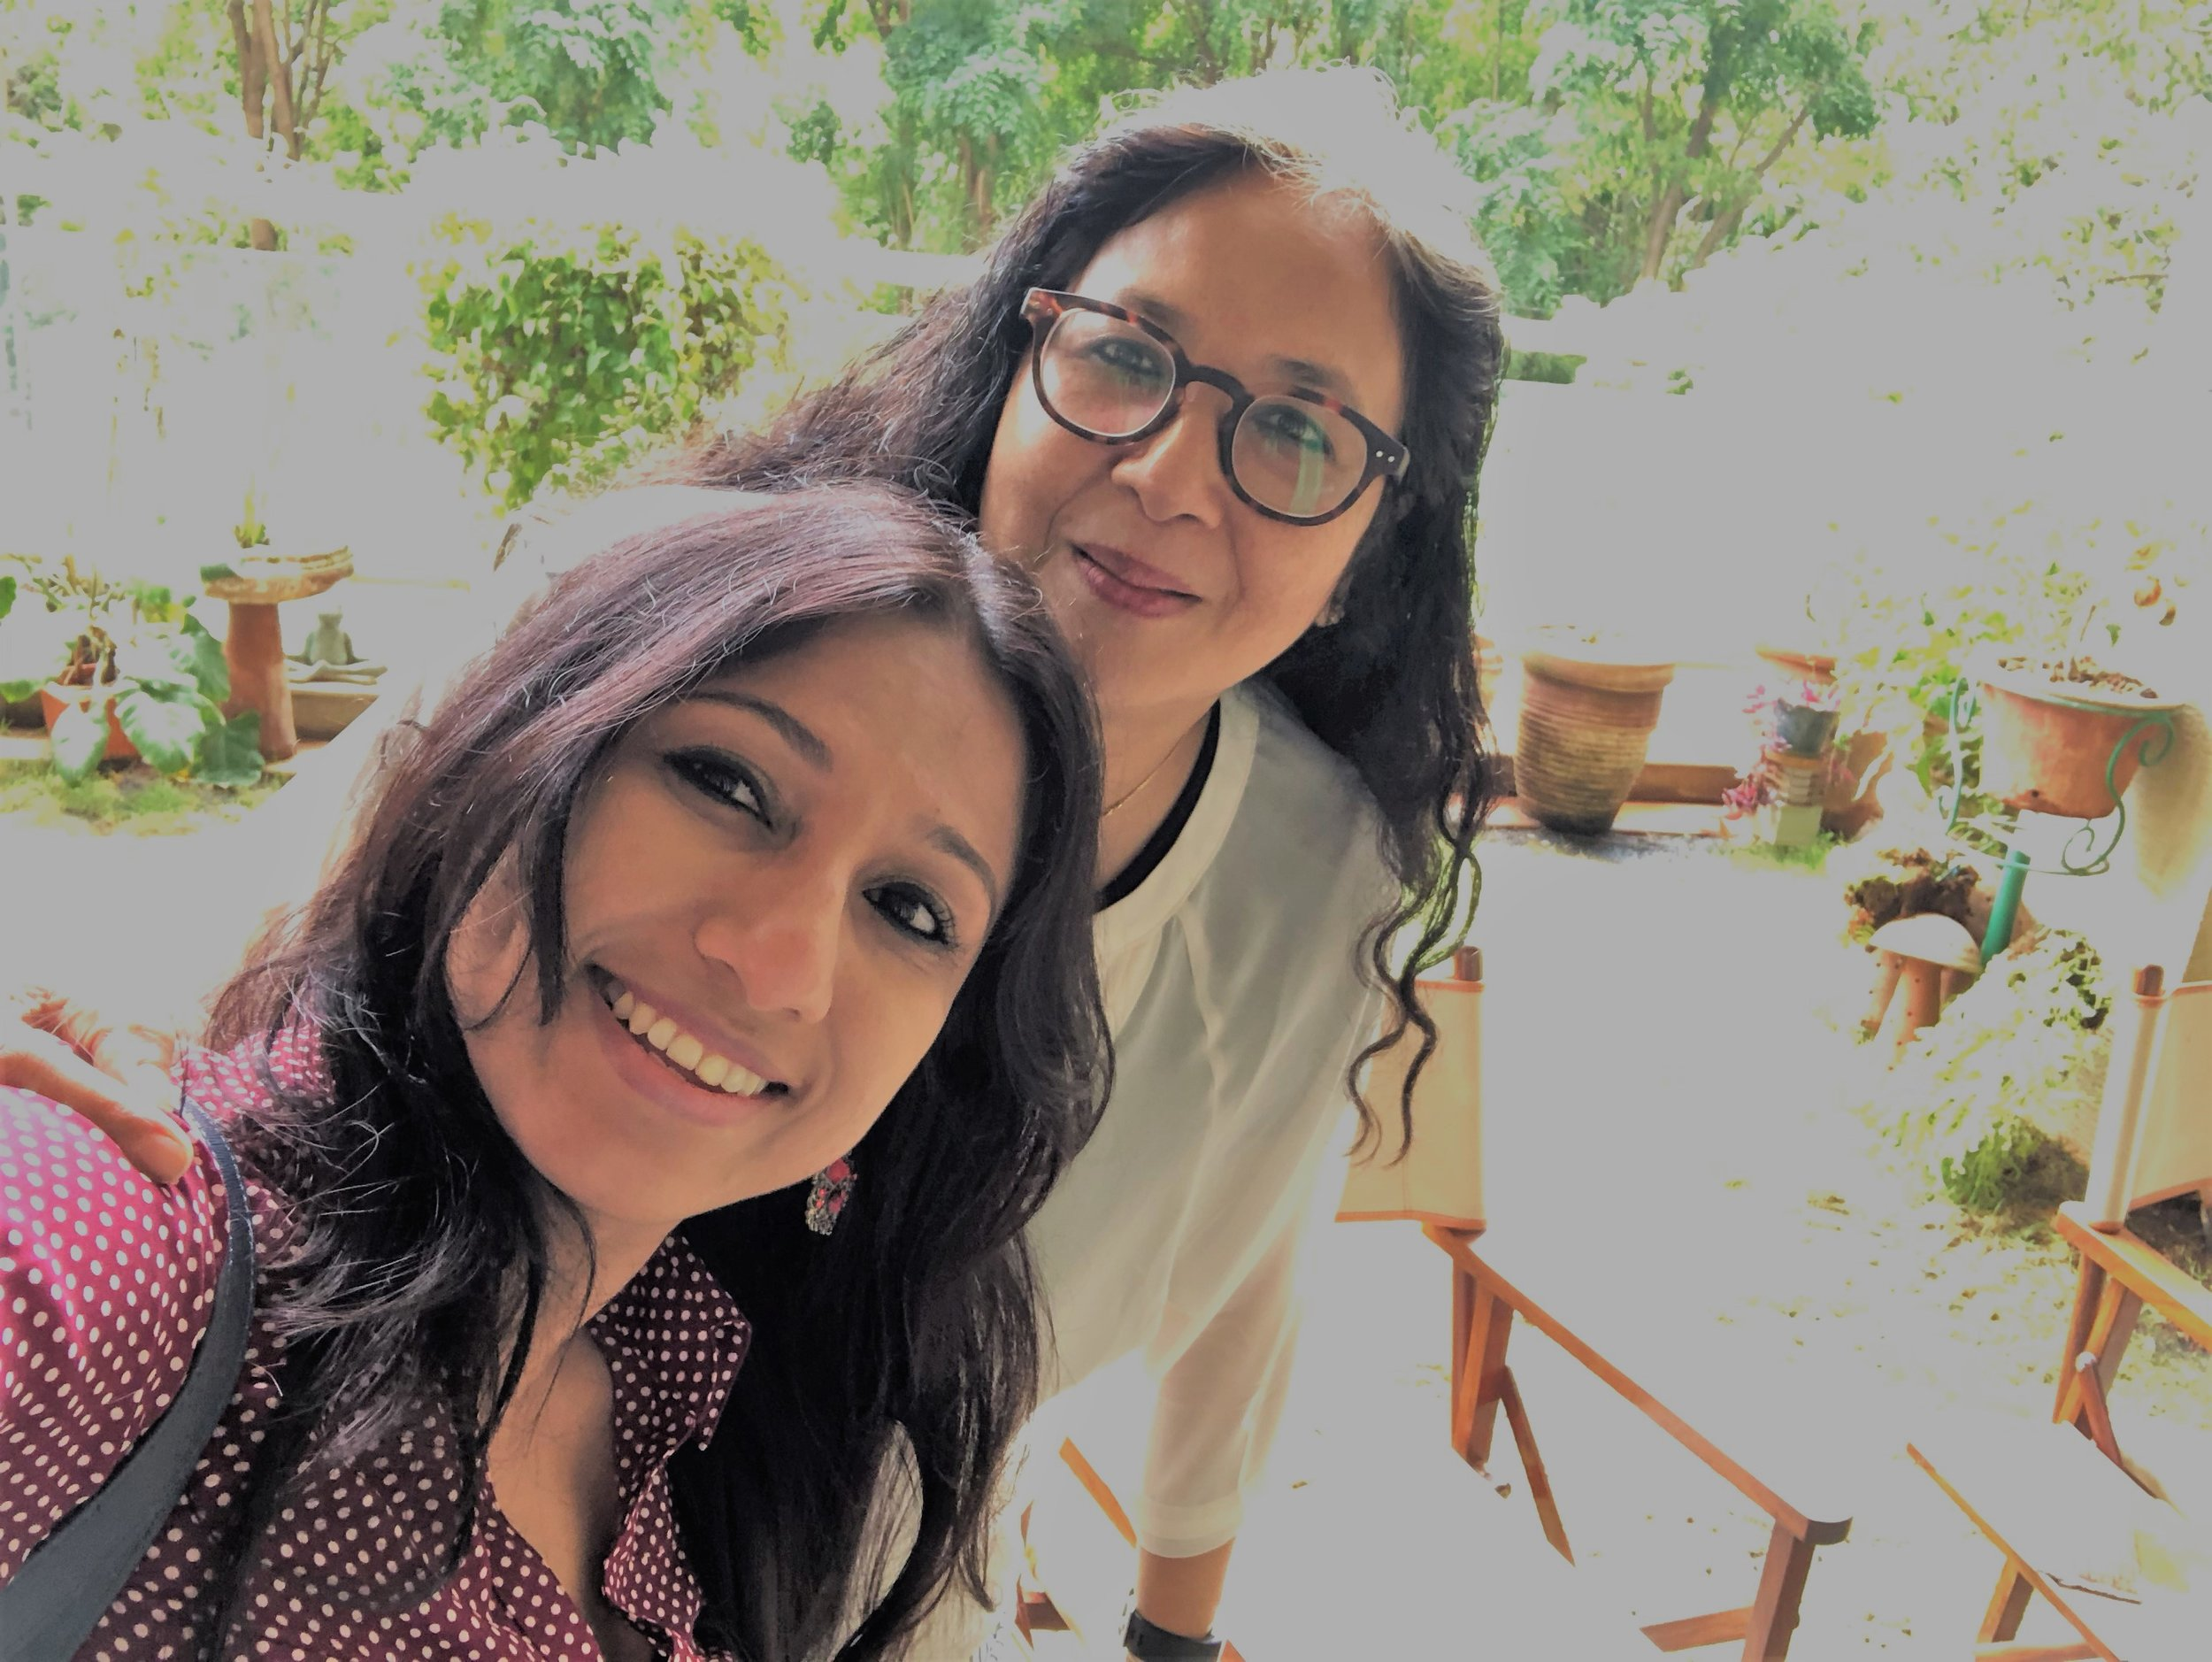 One on One Meeting with Mrs. Savitri Choudhury— Major Deepshikha Gupta introduced me to Mrs. Sabi Chhatwal. It was an honor meeting such an inspirational person as Sabi who is originally from Assam. Sabi is going to connect me with her network who she feels will be very impactful.